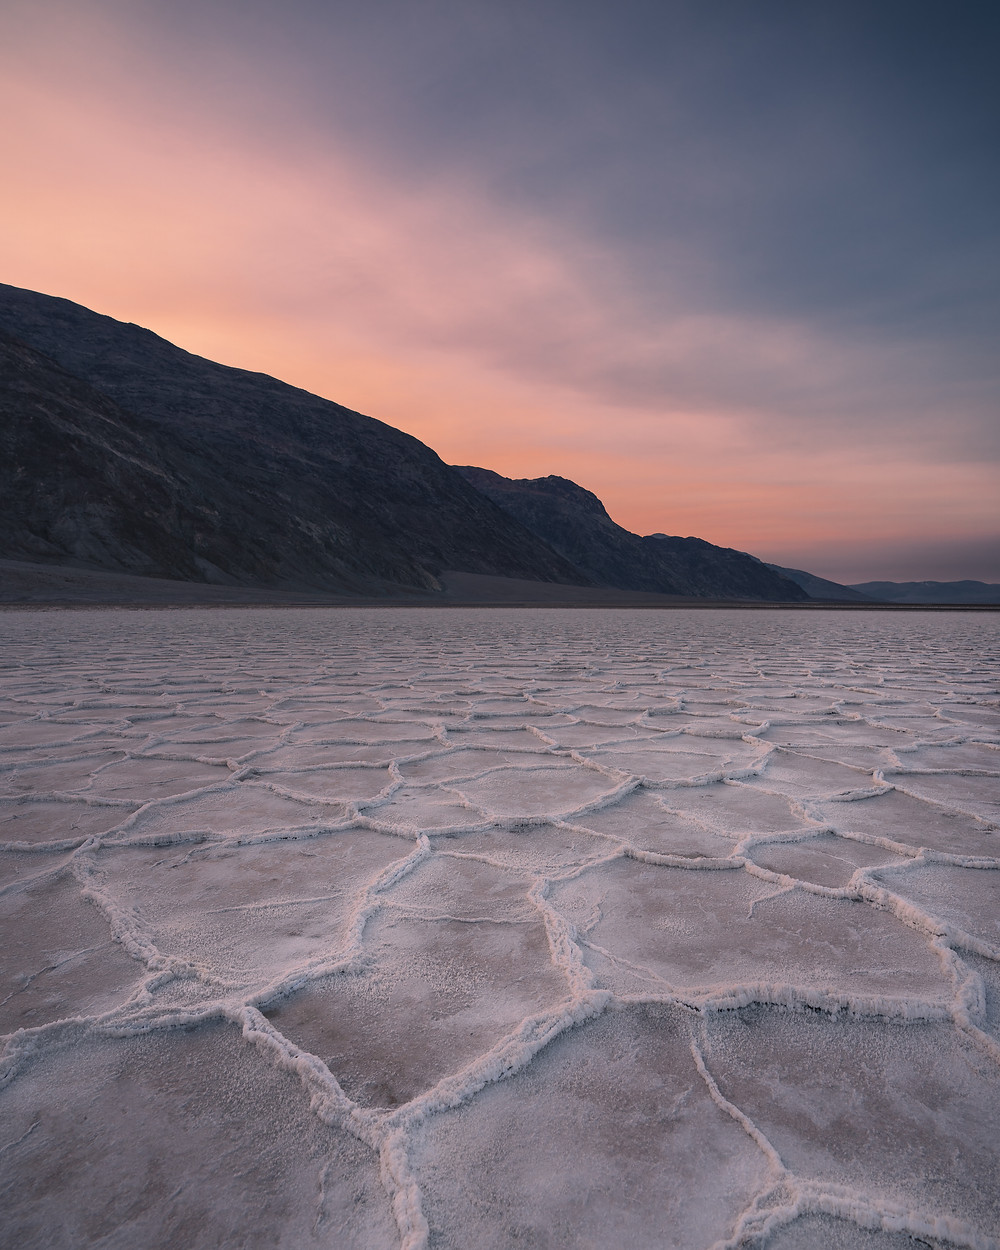 colorful sunset sky over the white salt flats in Death Valley